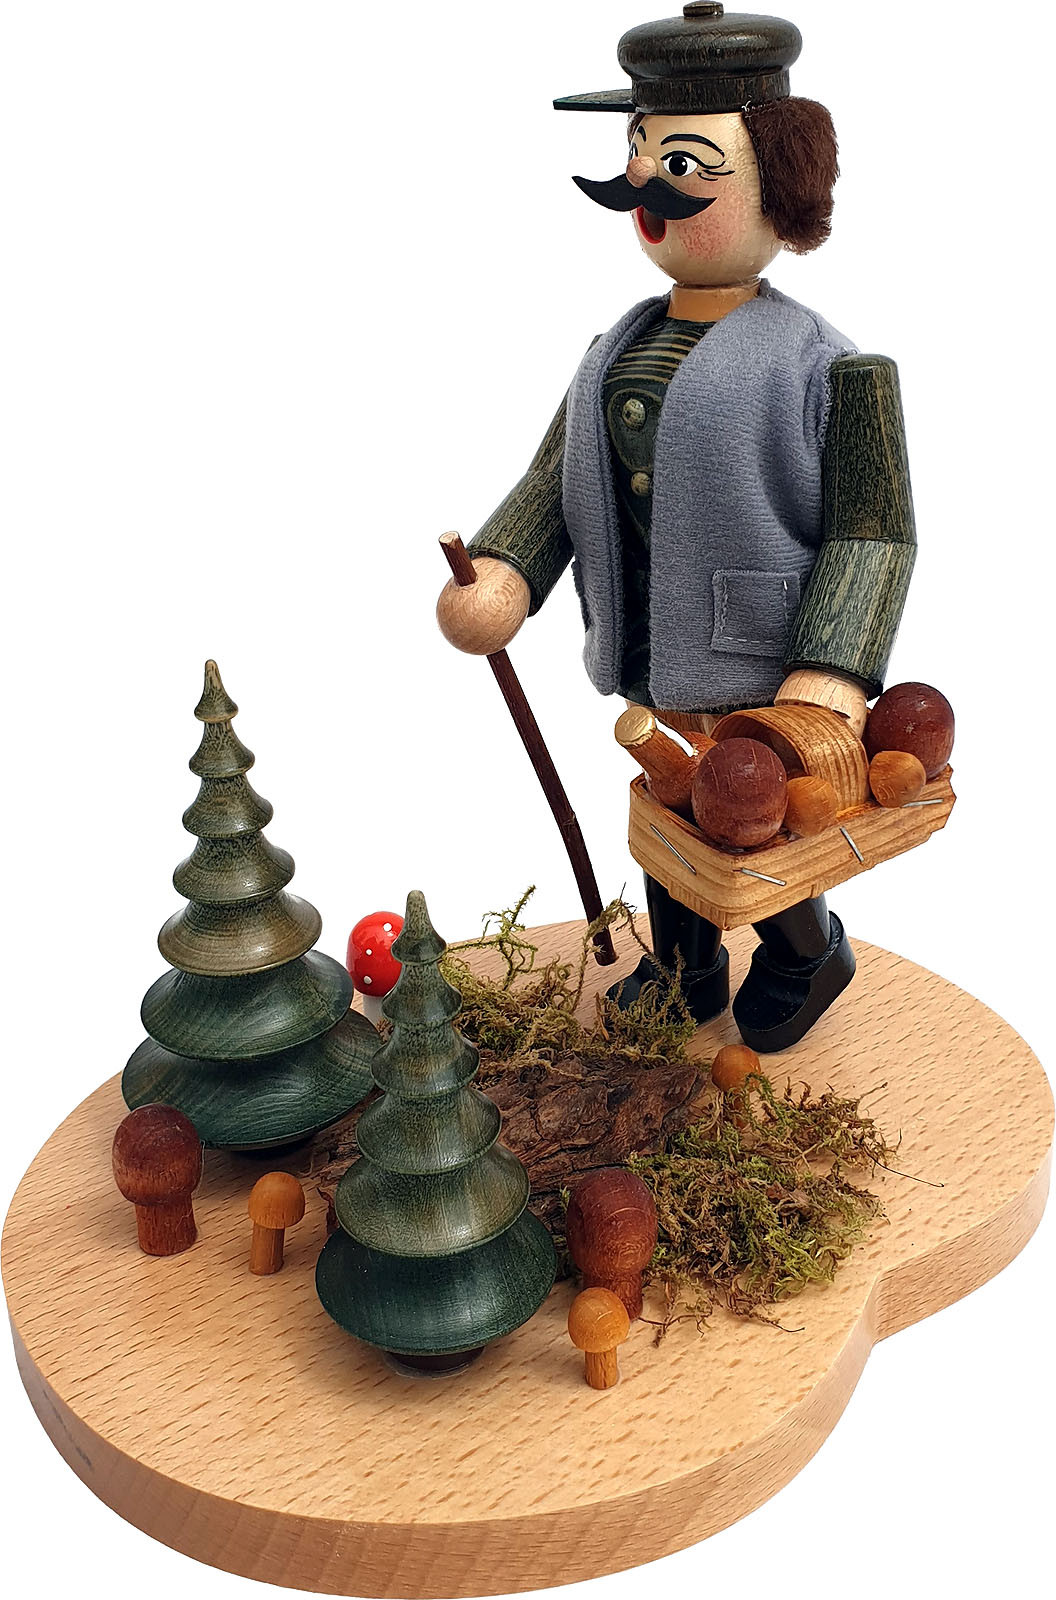 incense smoker the mushroom picker